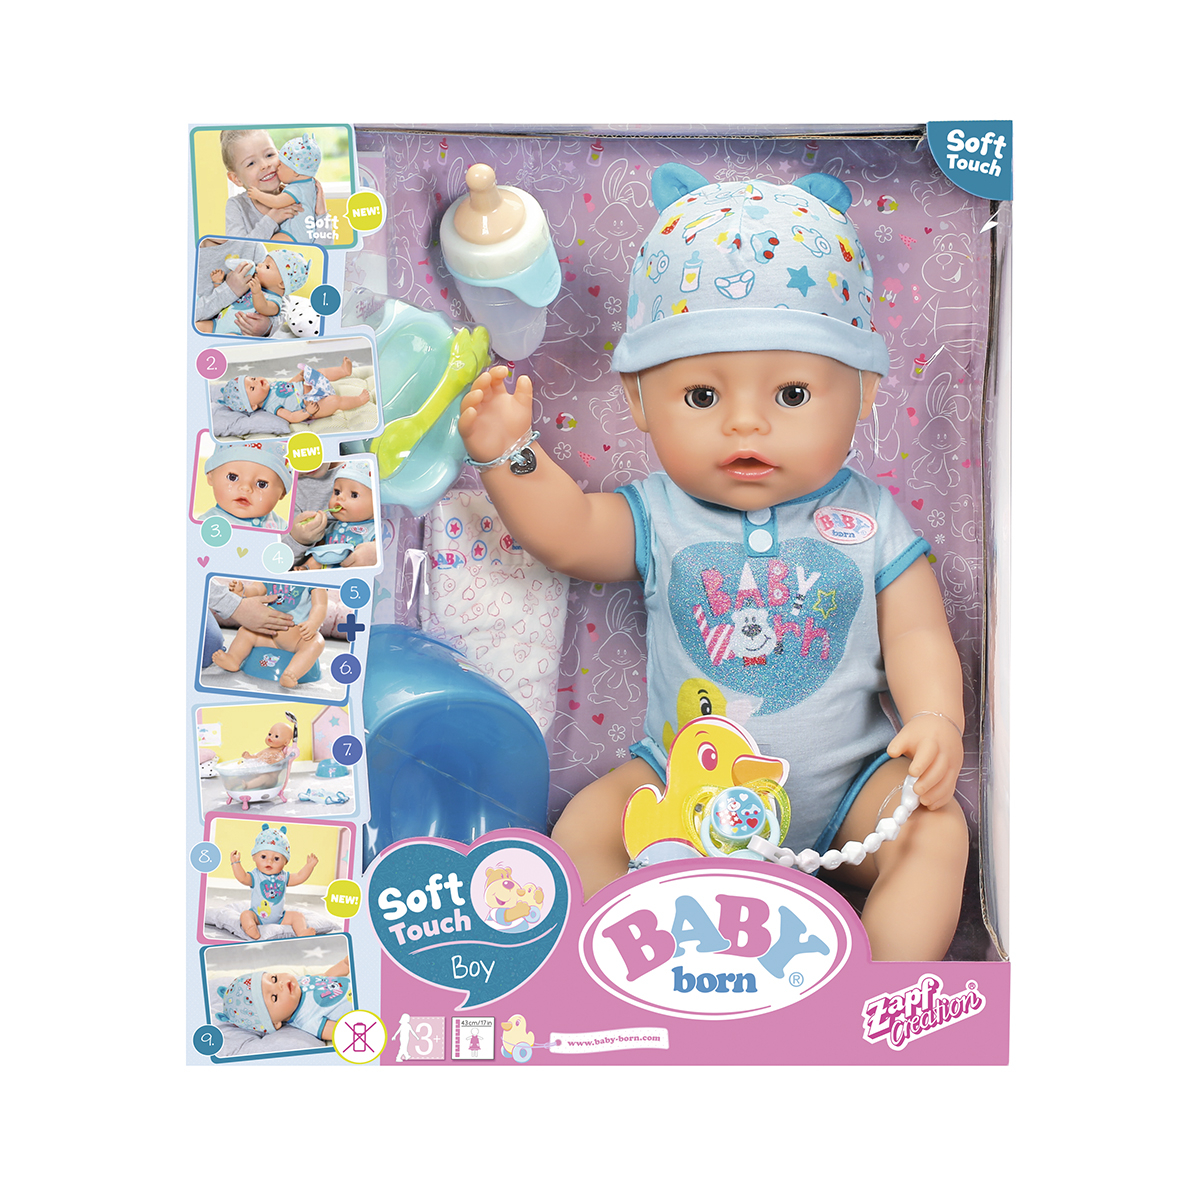 BABY BORN INTERACTIVE DOLL SOFT TOUCH BOY 38 cm